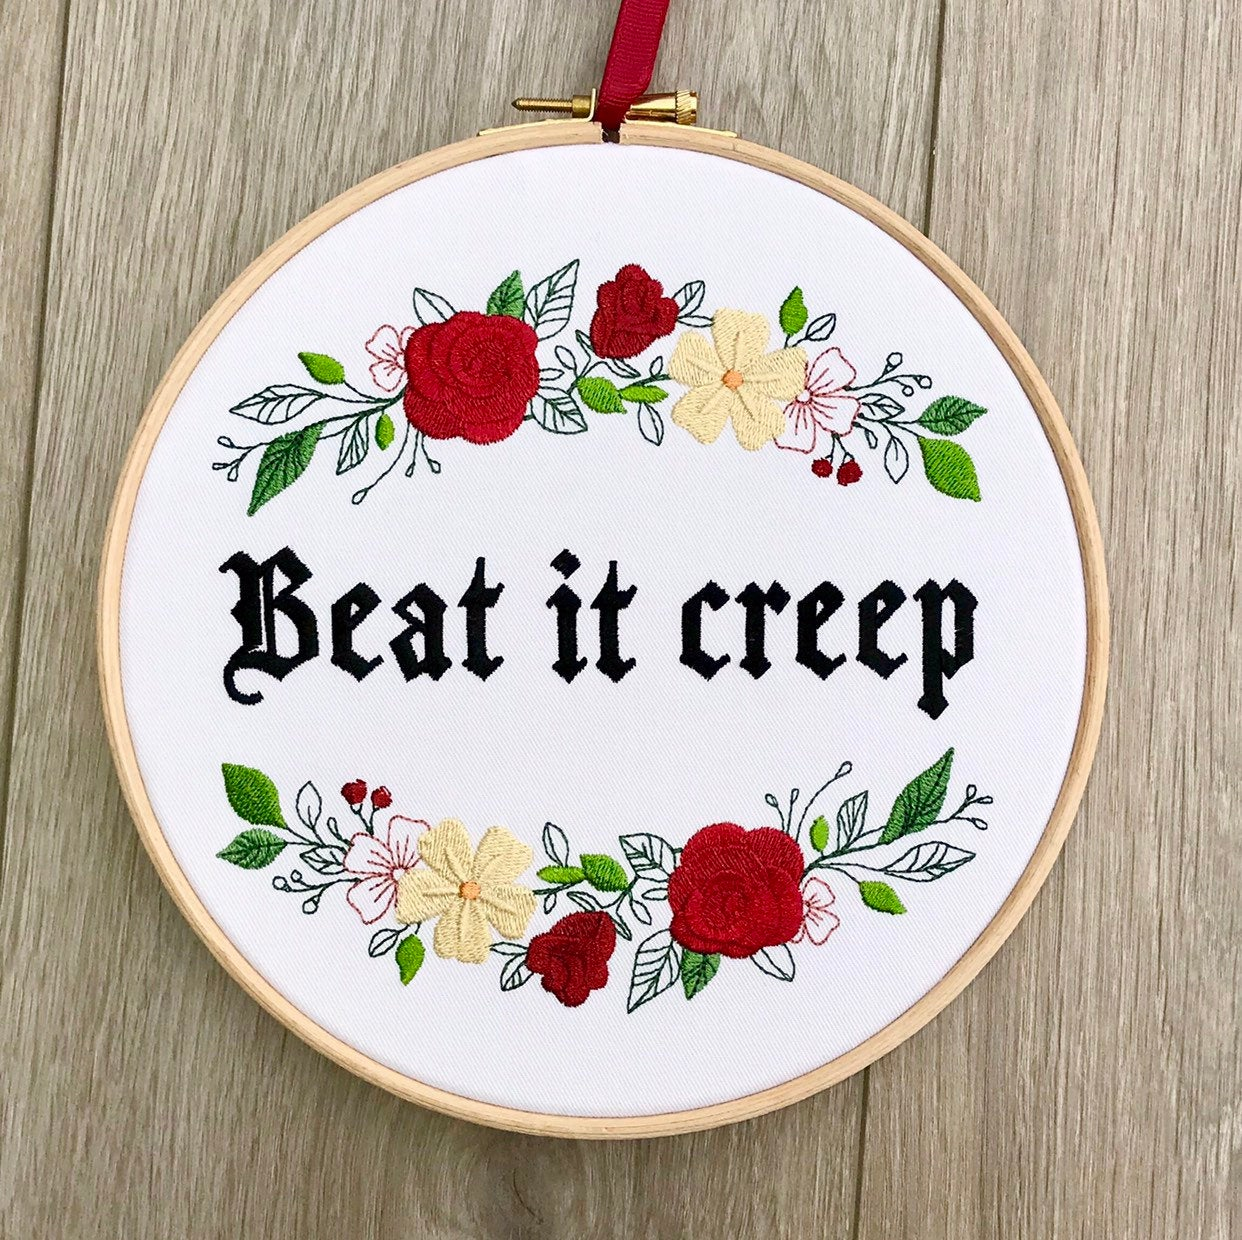 Beat it creep embroidery hoop art Crybaby quote Wanda